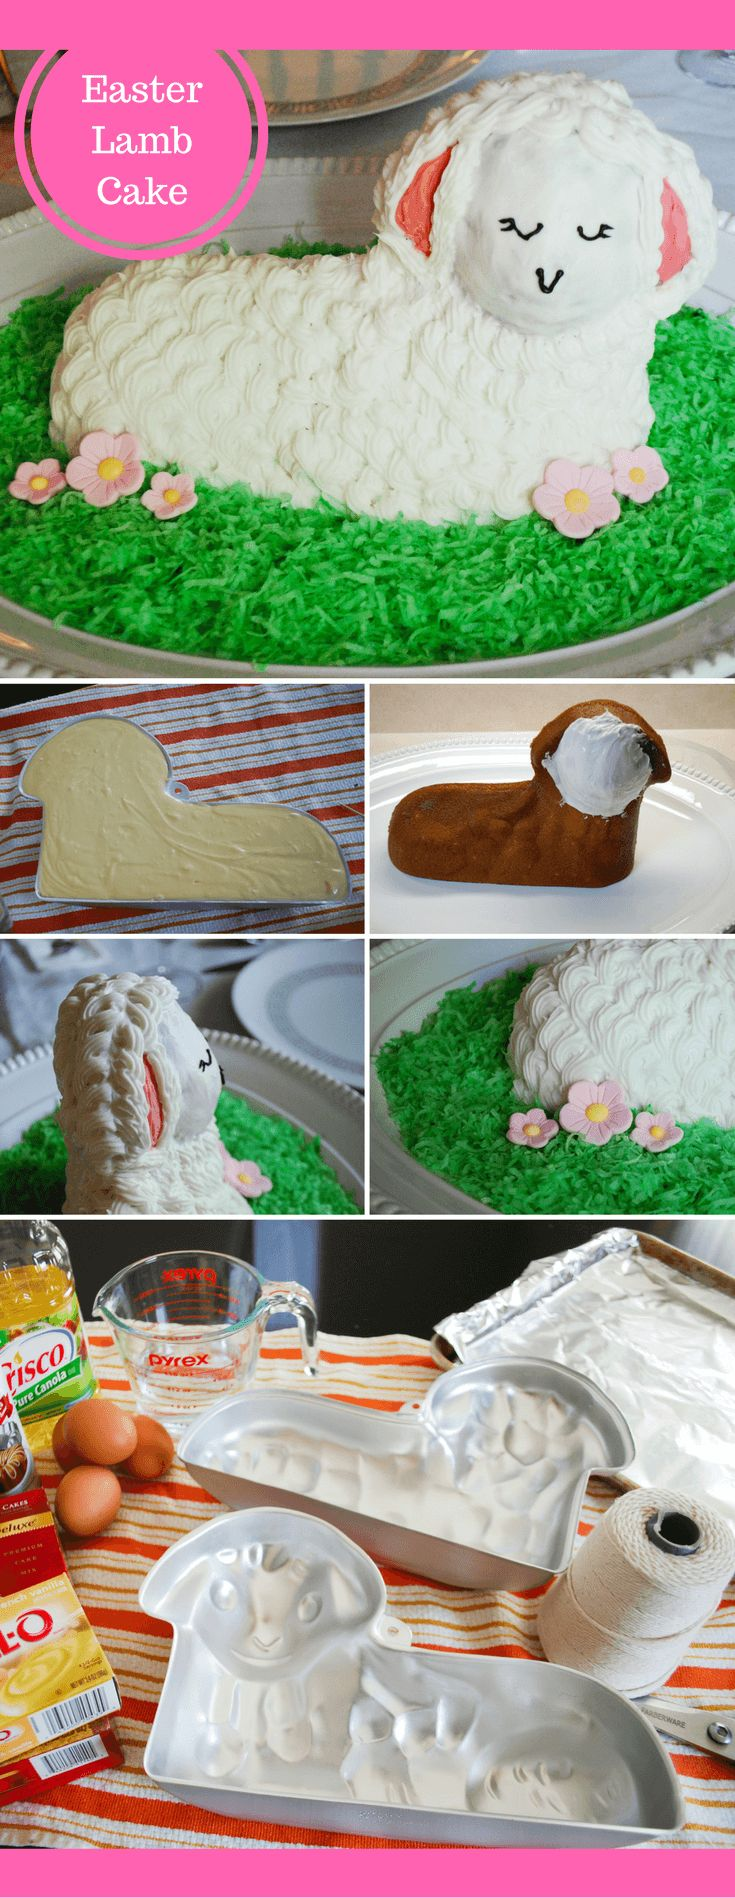 best ideas about lamb cake marshmallow cake how to make and decorate a traditional 3d standup easter lamb cake what a cute